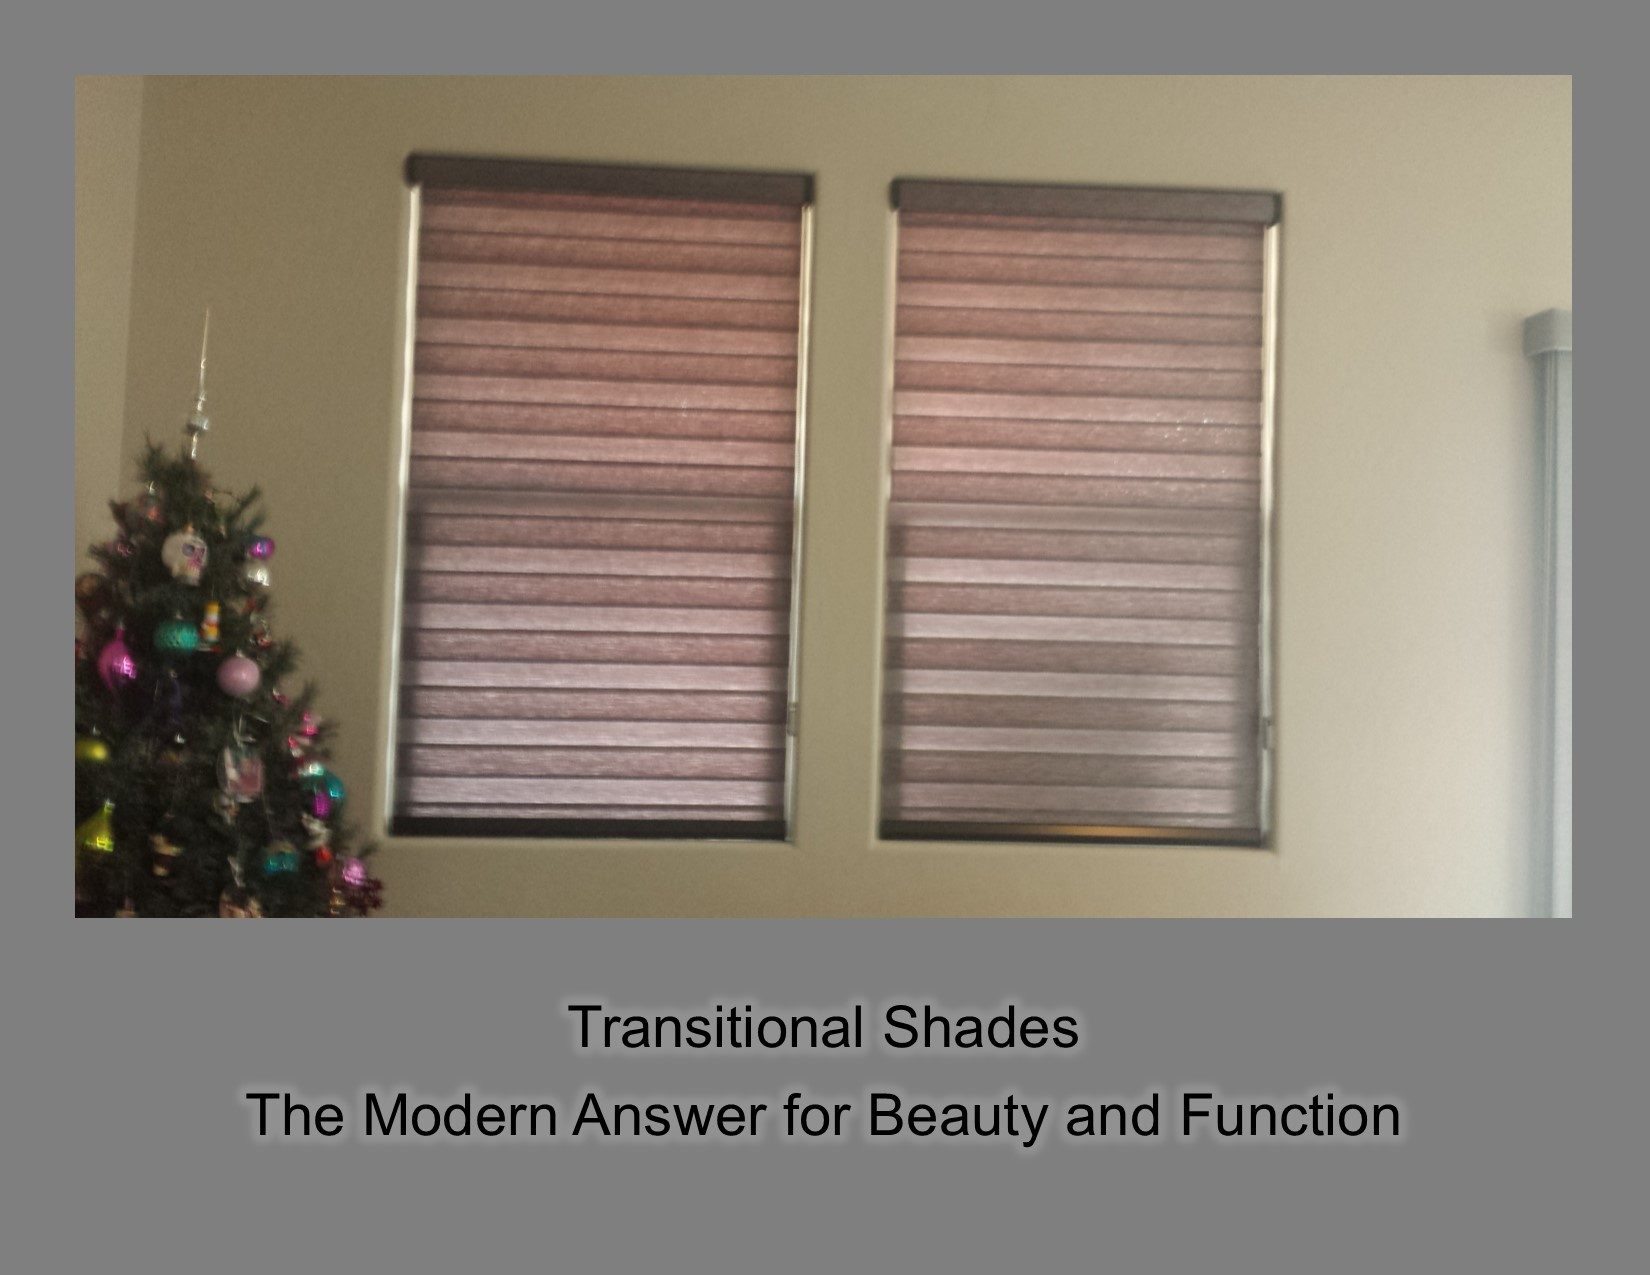 Transitional_Shades_1.jpg